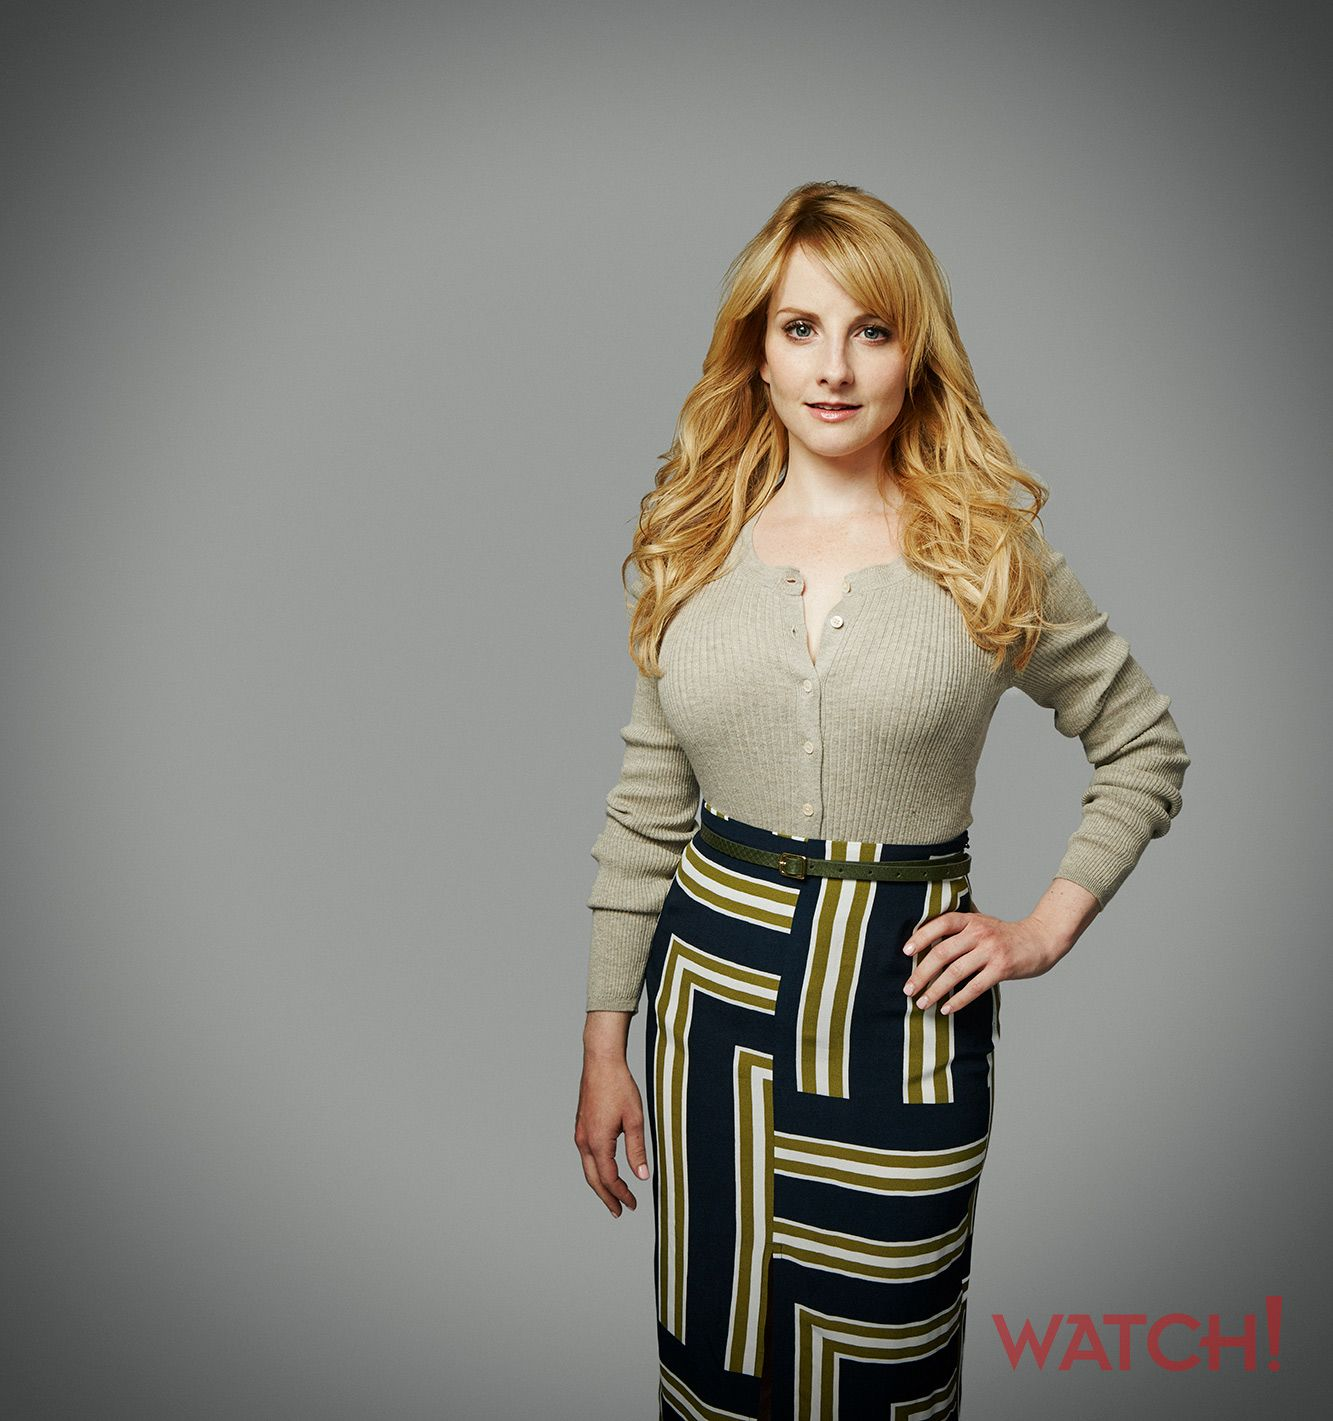 Who was melissa rauch body double